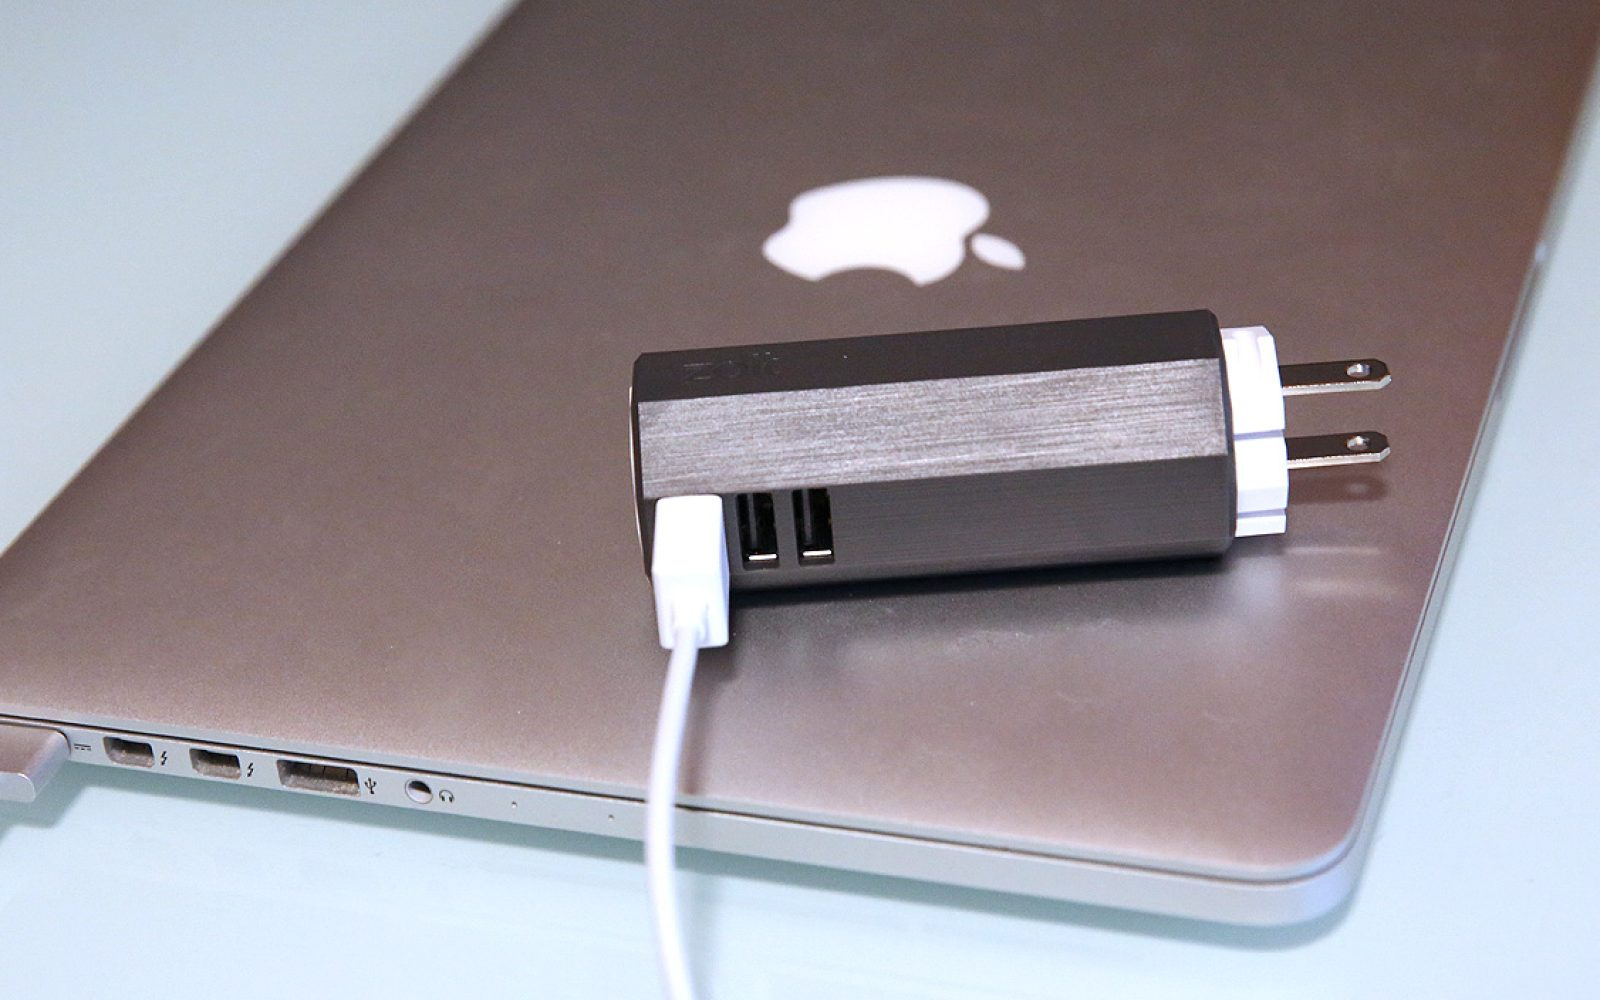 Review Zolts Laptop Charger Plus Is A 3 In 1 MagSafe Ready Mac IPad IPhone Power Adapter